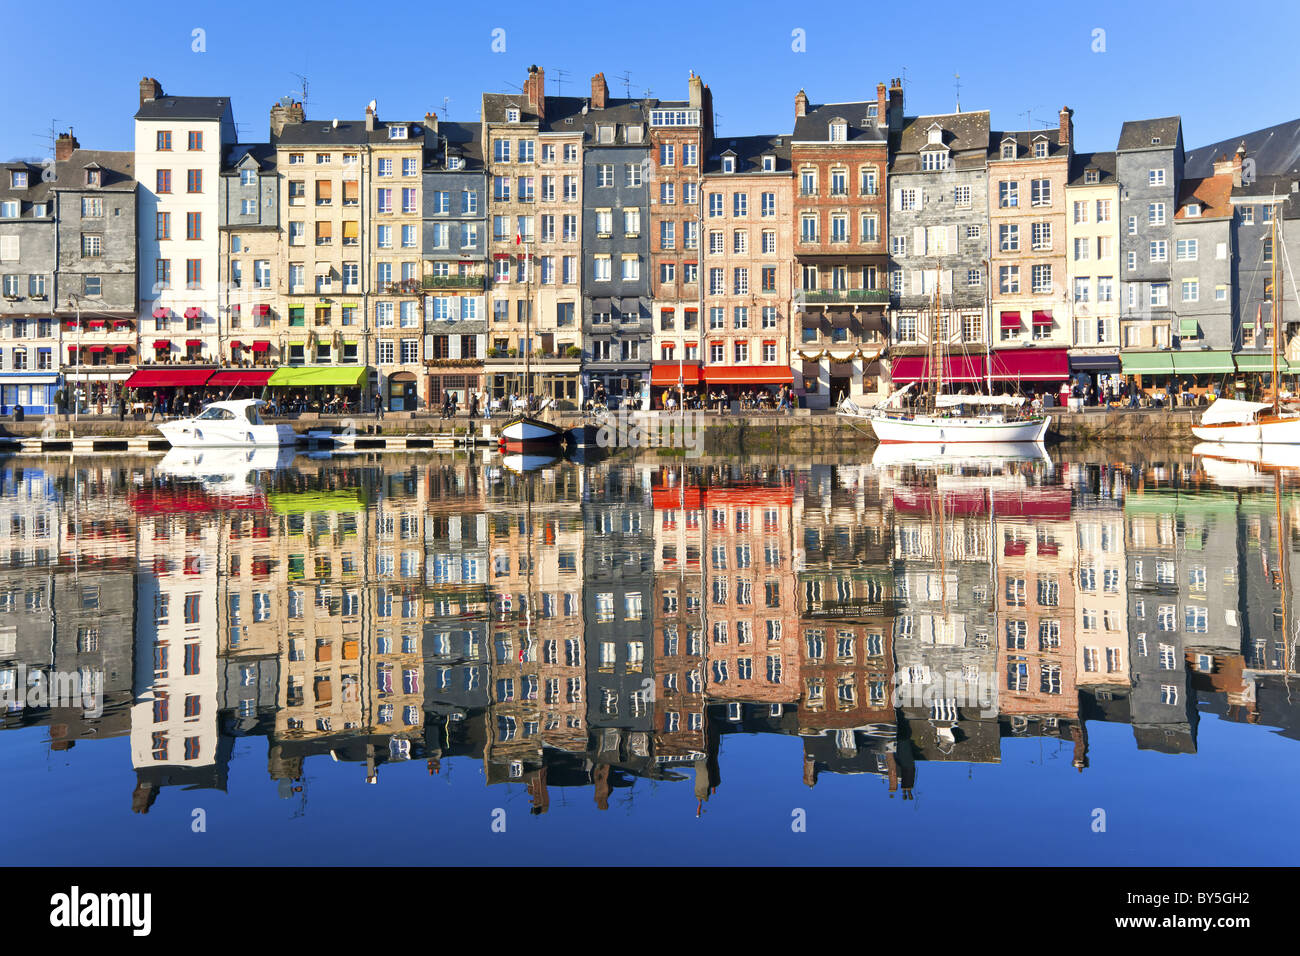 Honfleur harbour in Normandy, France. Color houses and their reflection in water - Stock Image